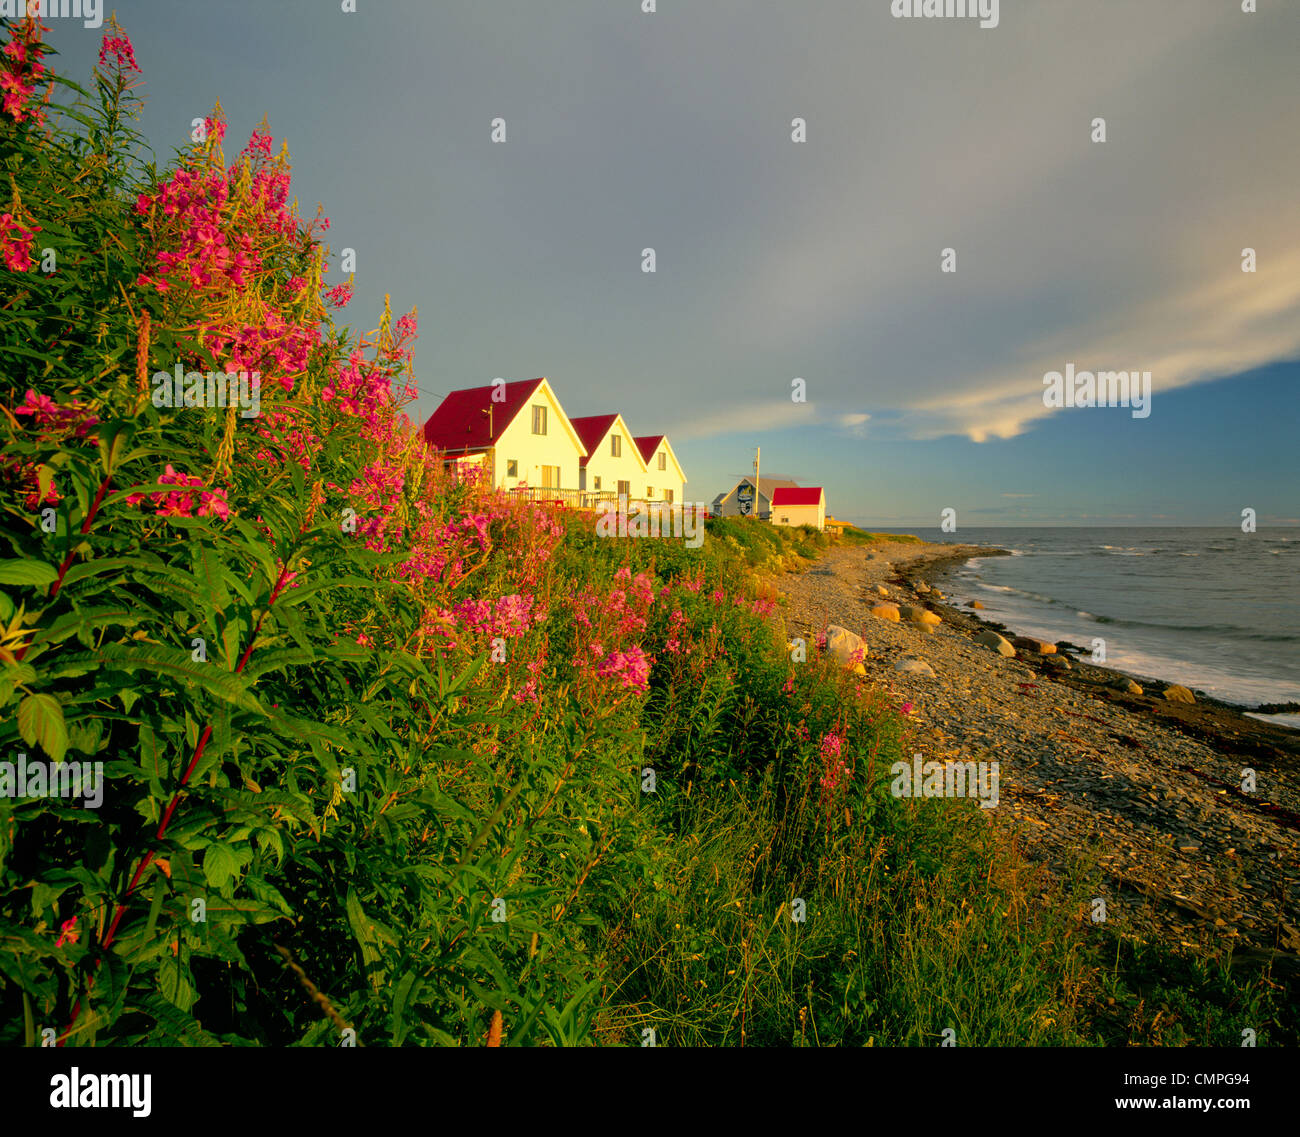 Cottages on St Lawrence River, Petit Vallee, Gaspesie, Quebec - Stock Image